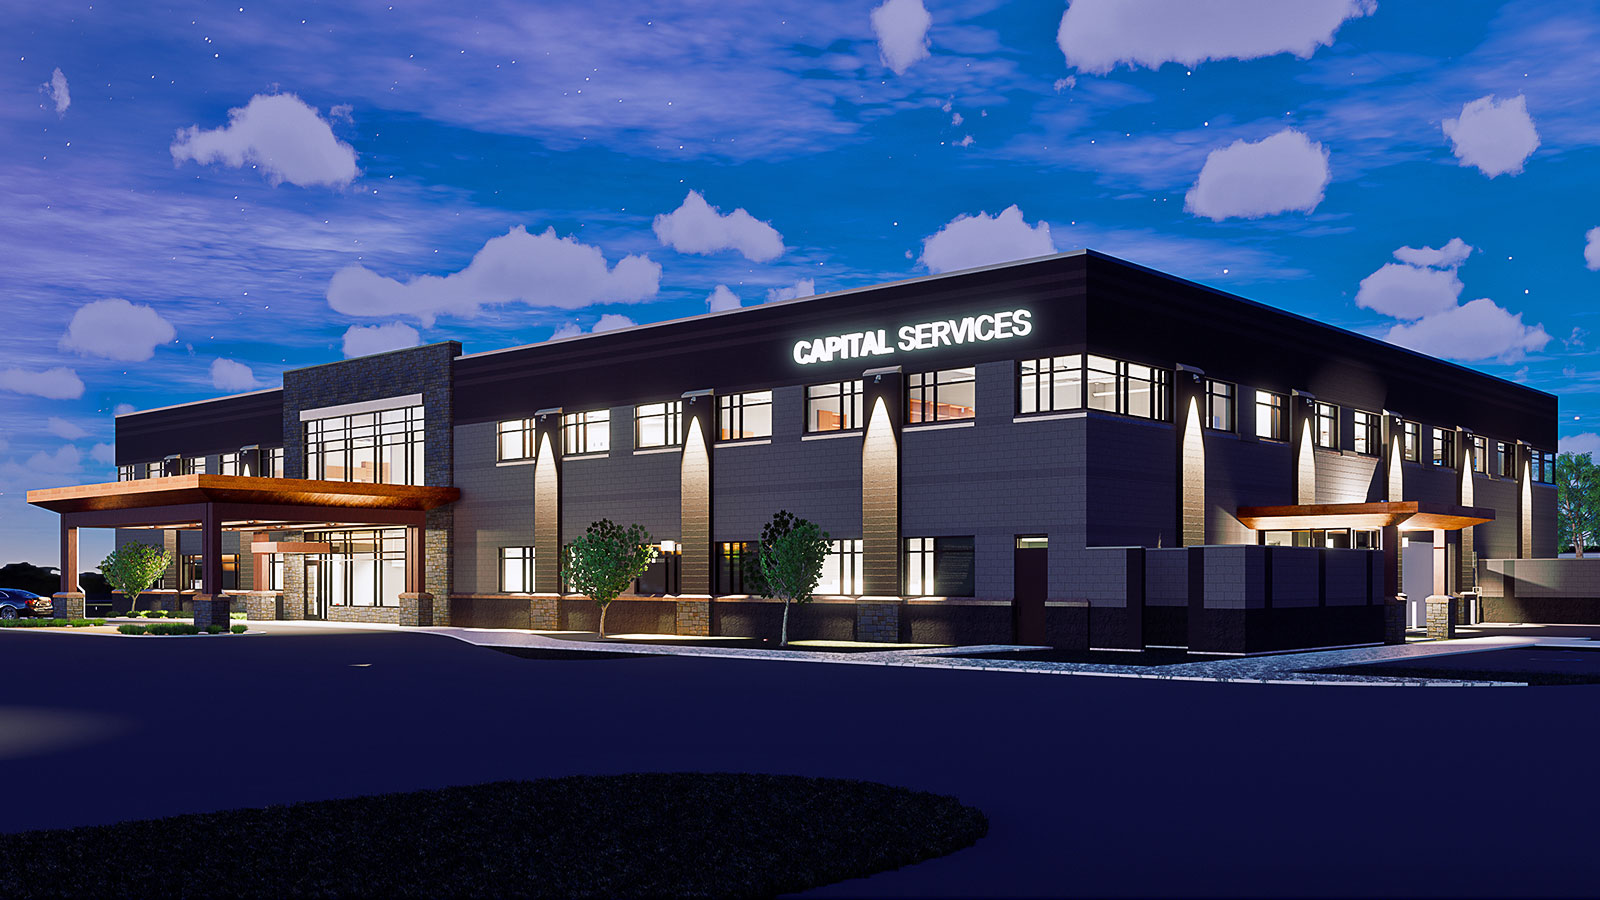 Capital Services